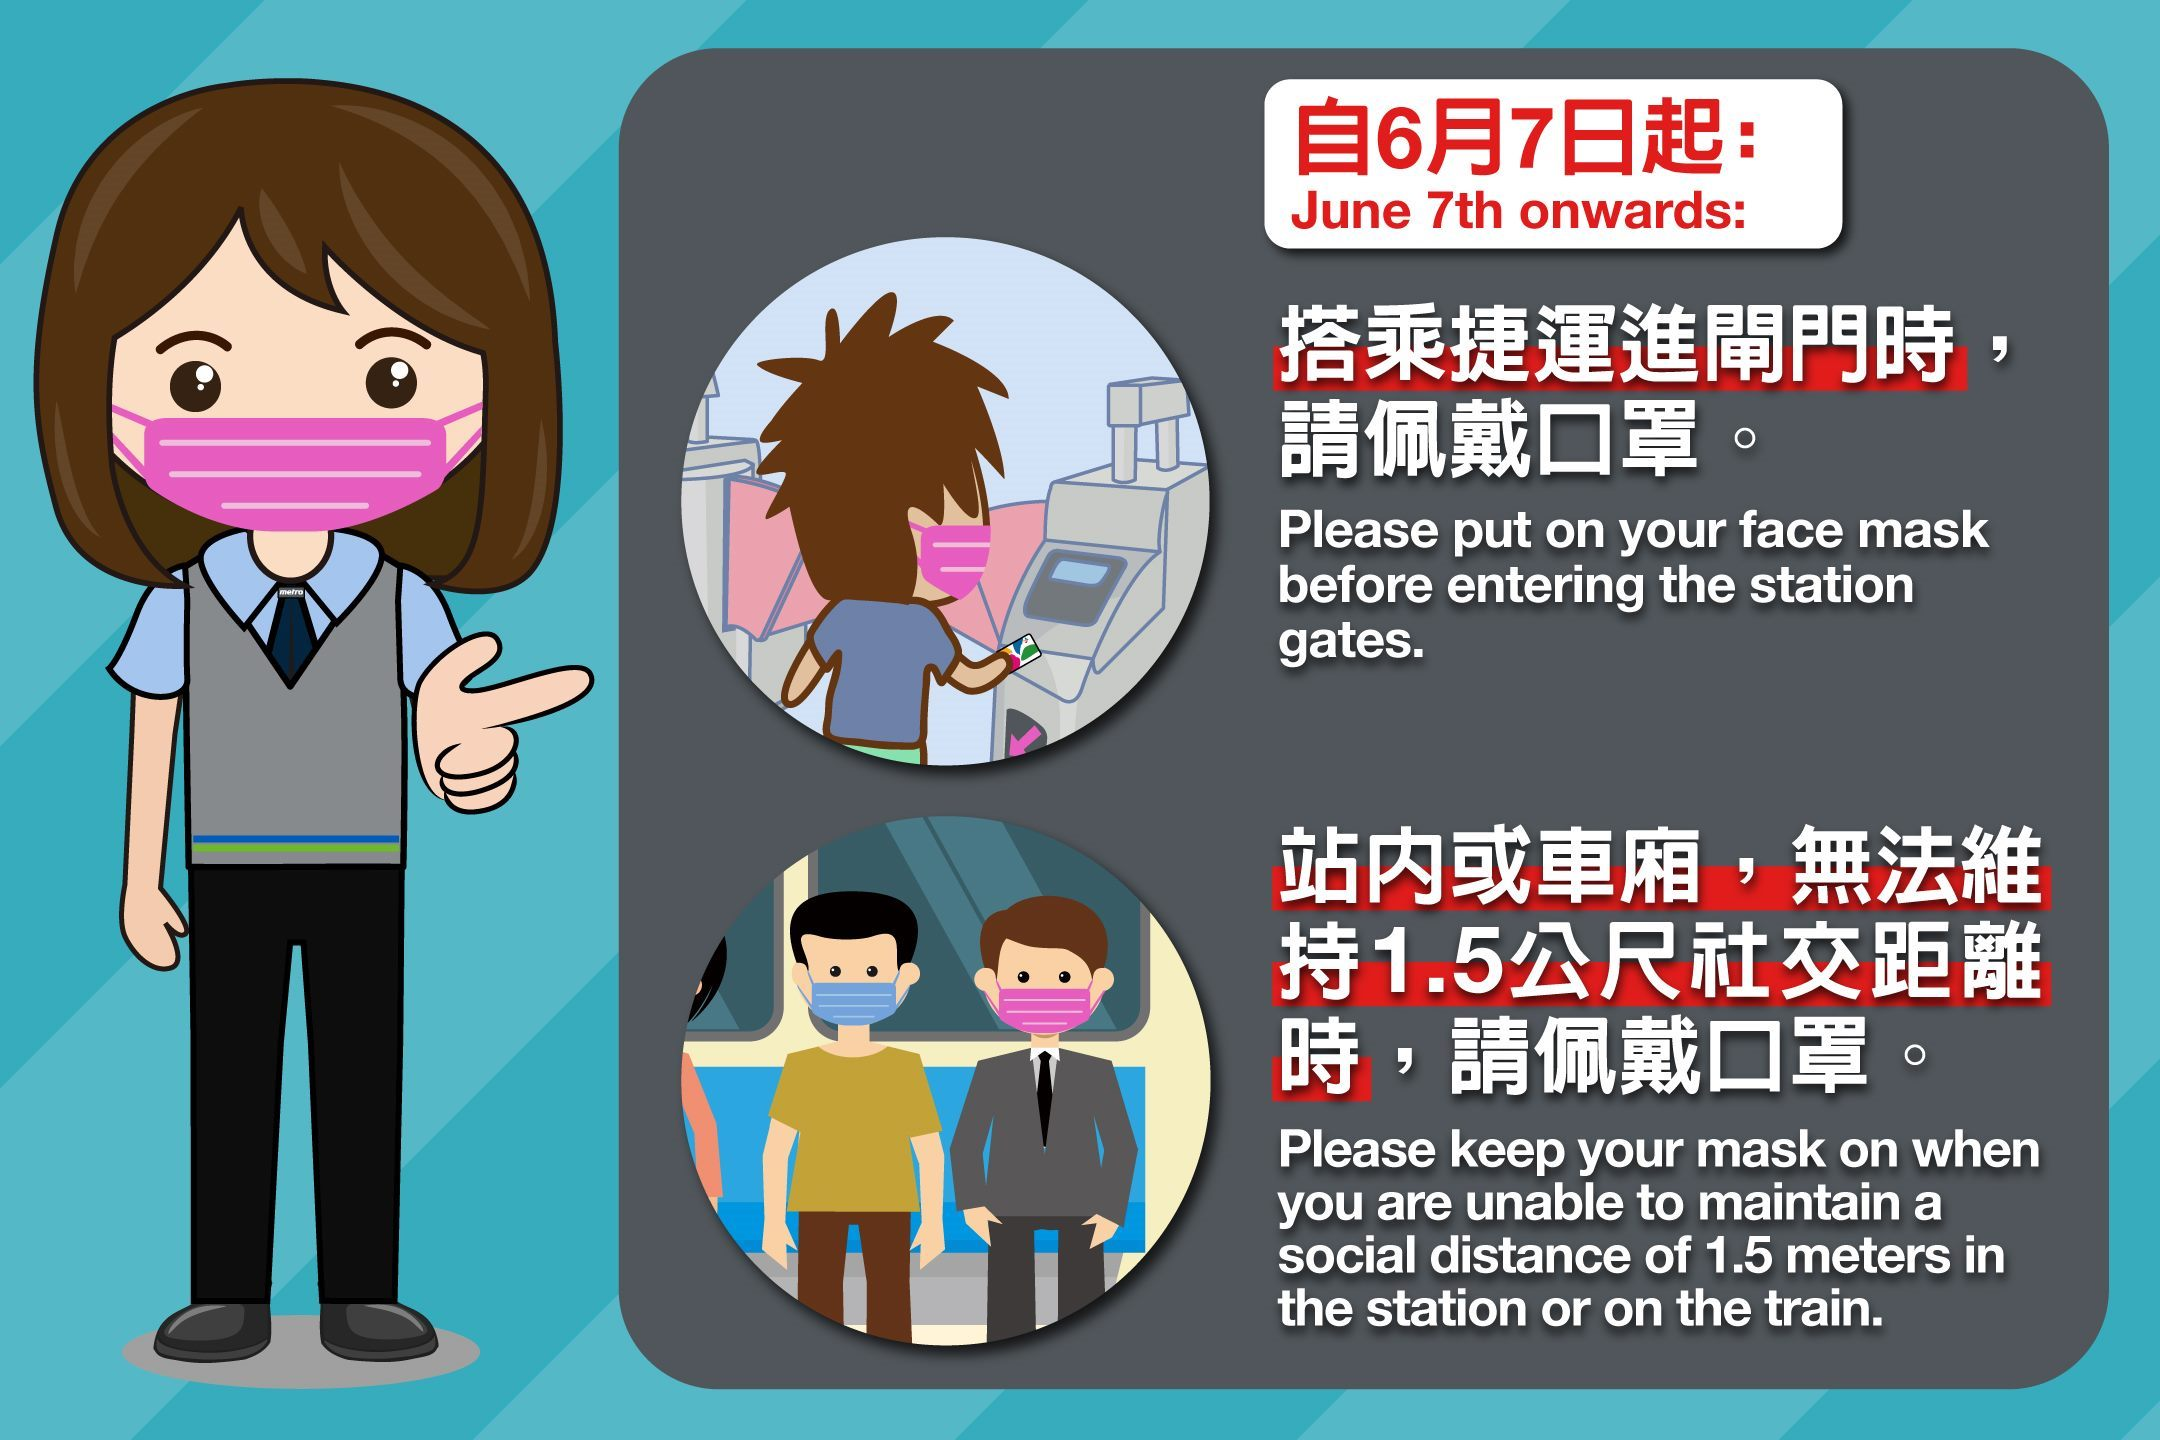 Updated MRT face mask regulations taking effect June 7